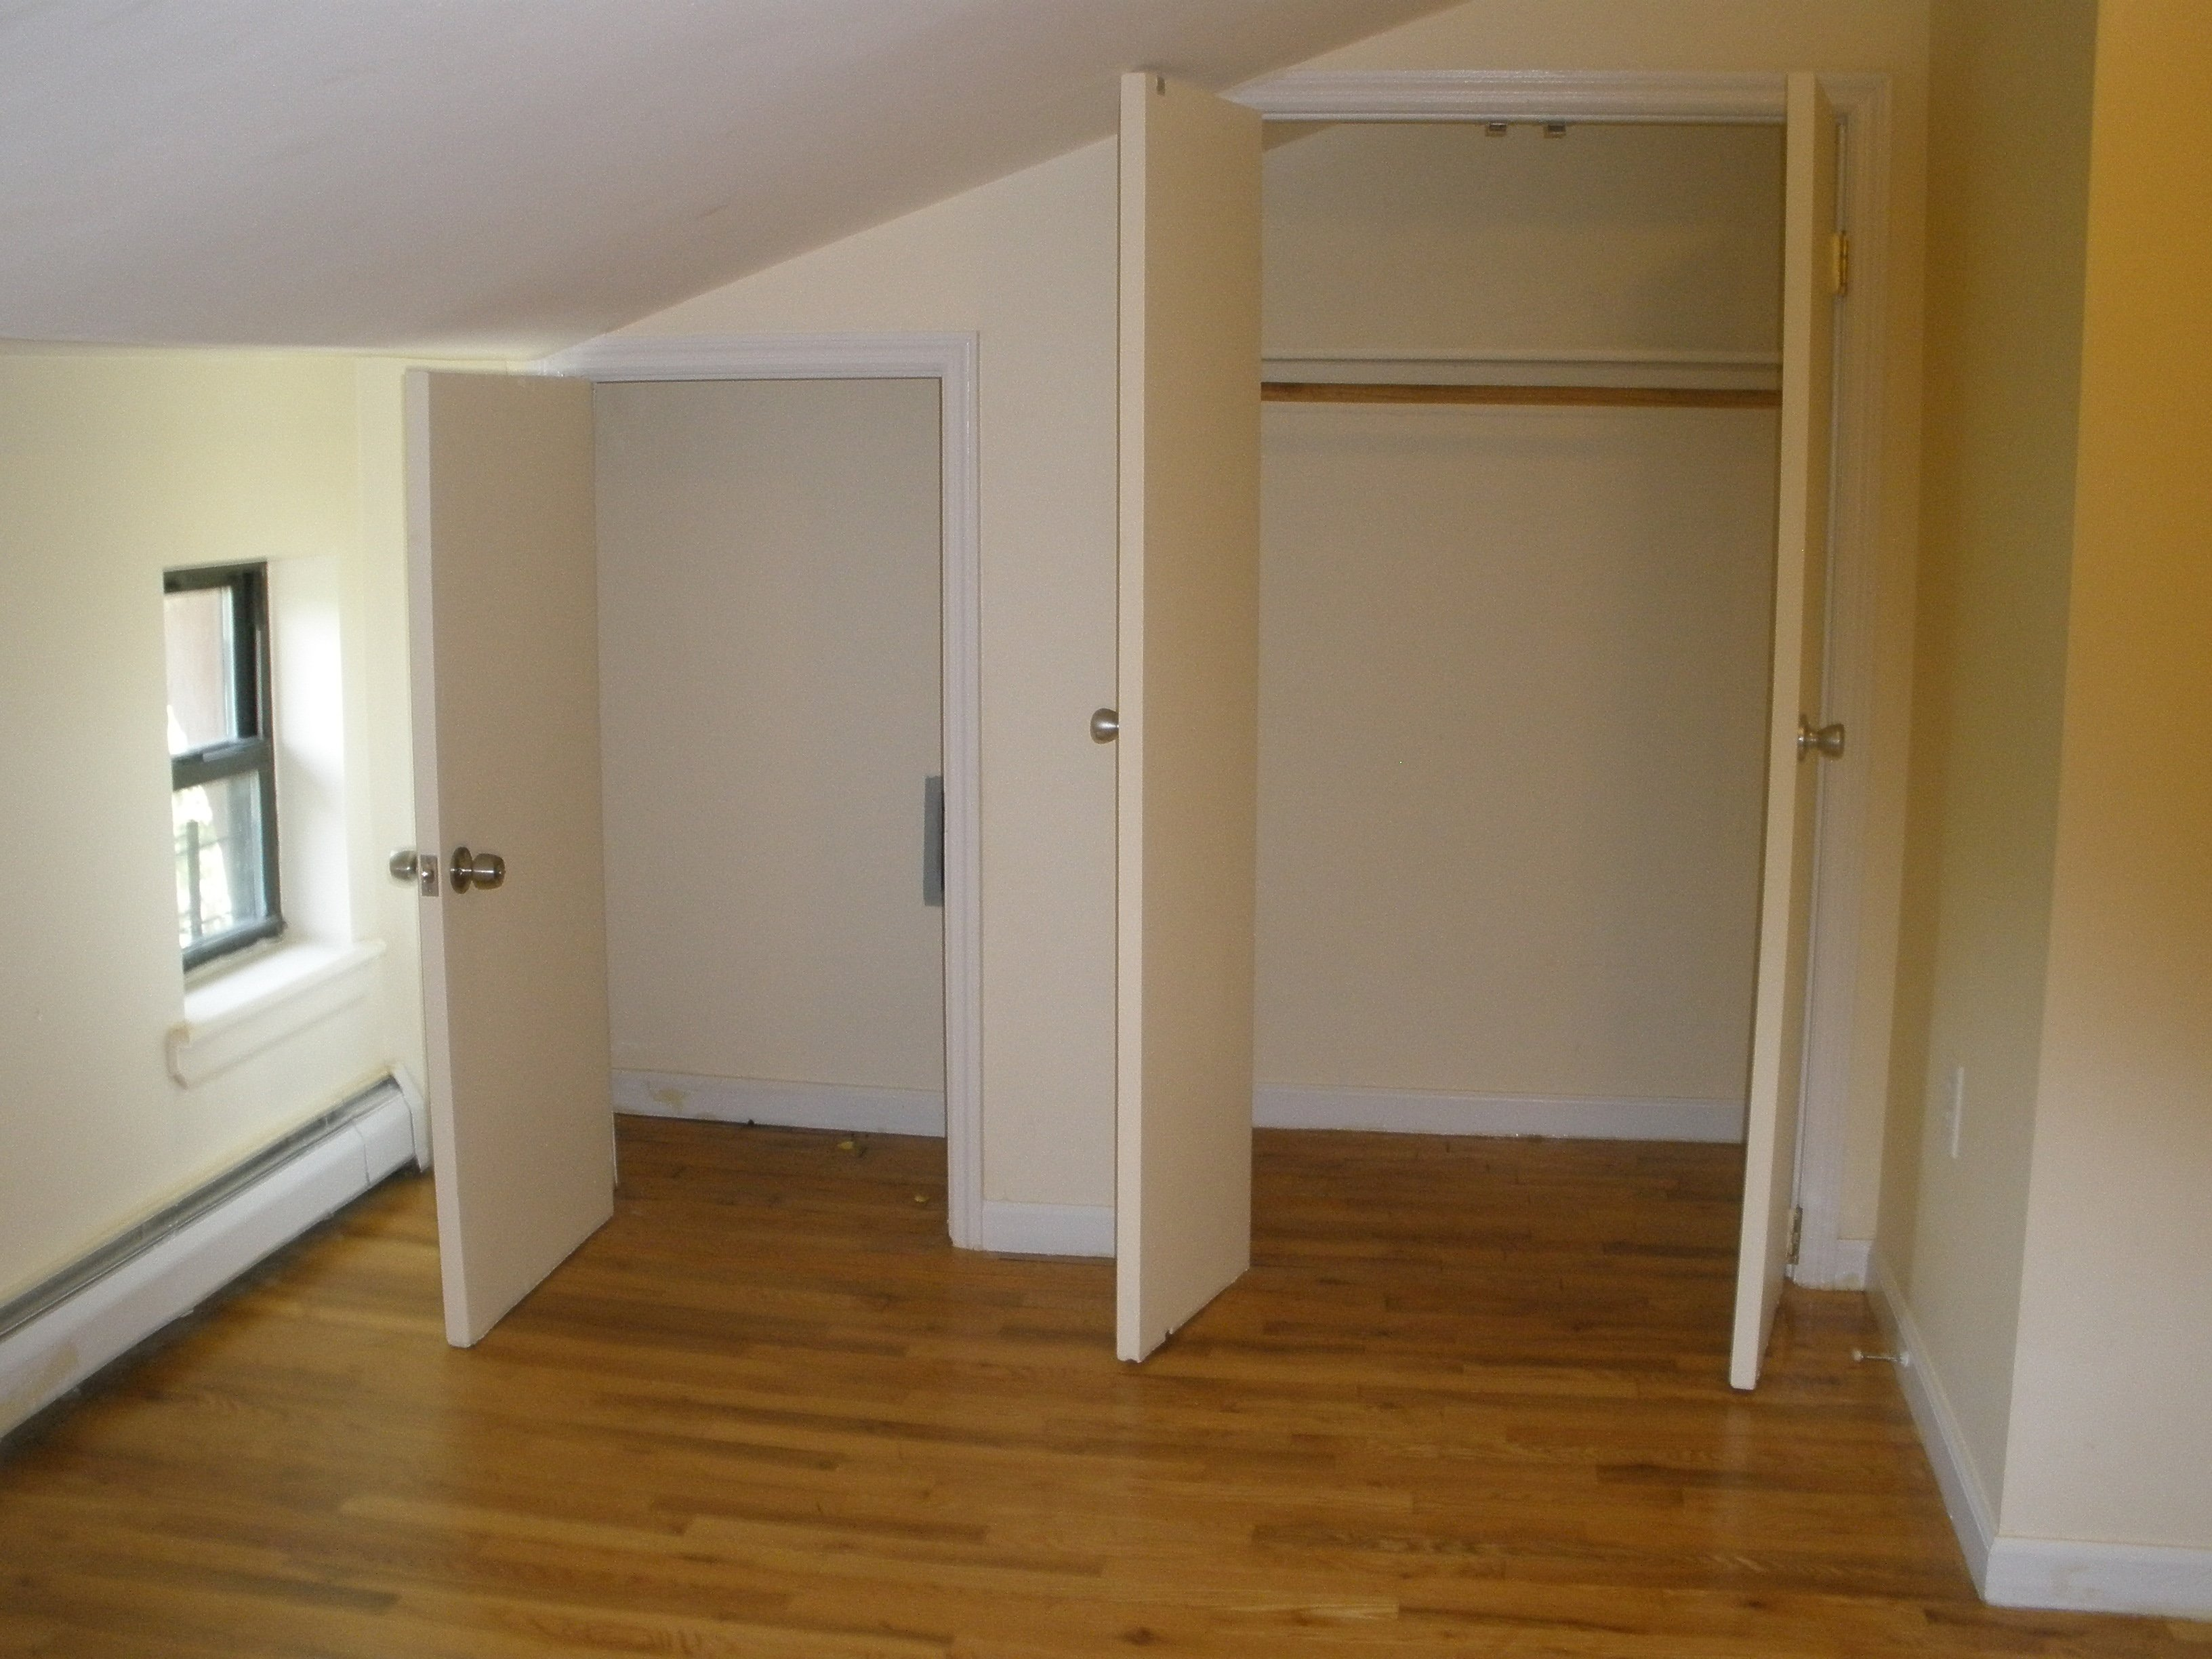 Bed stuy 1 bedroom apartment for rent brooklyn crg3115 for Two bedroom apt in bed stuy area